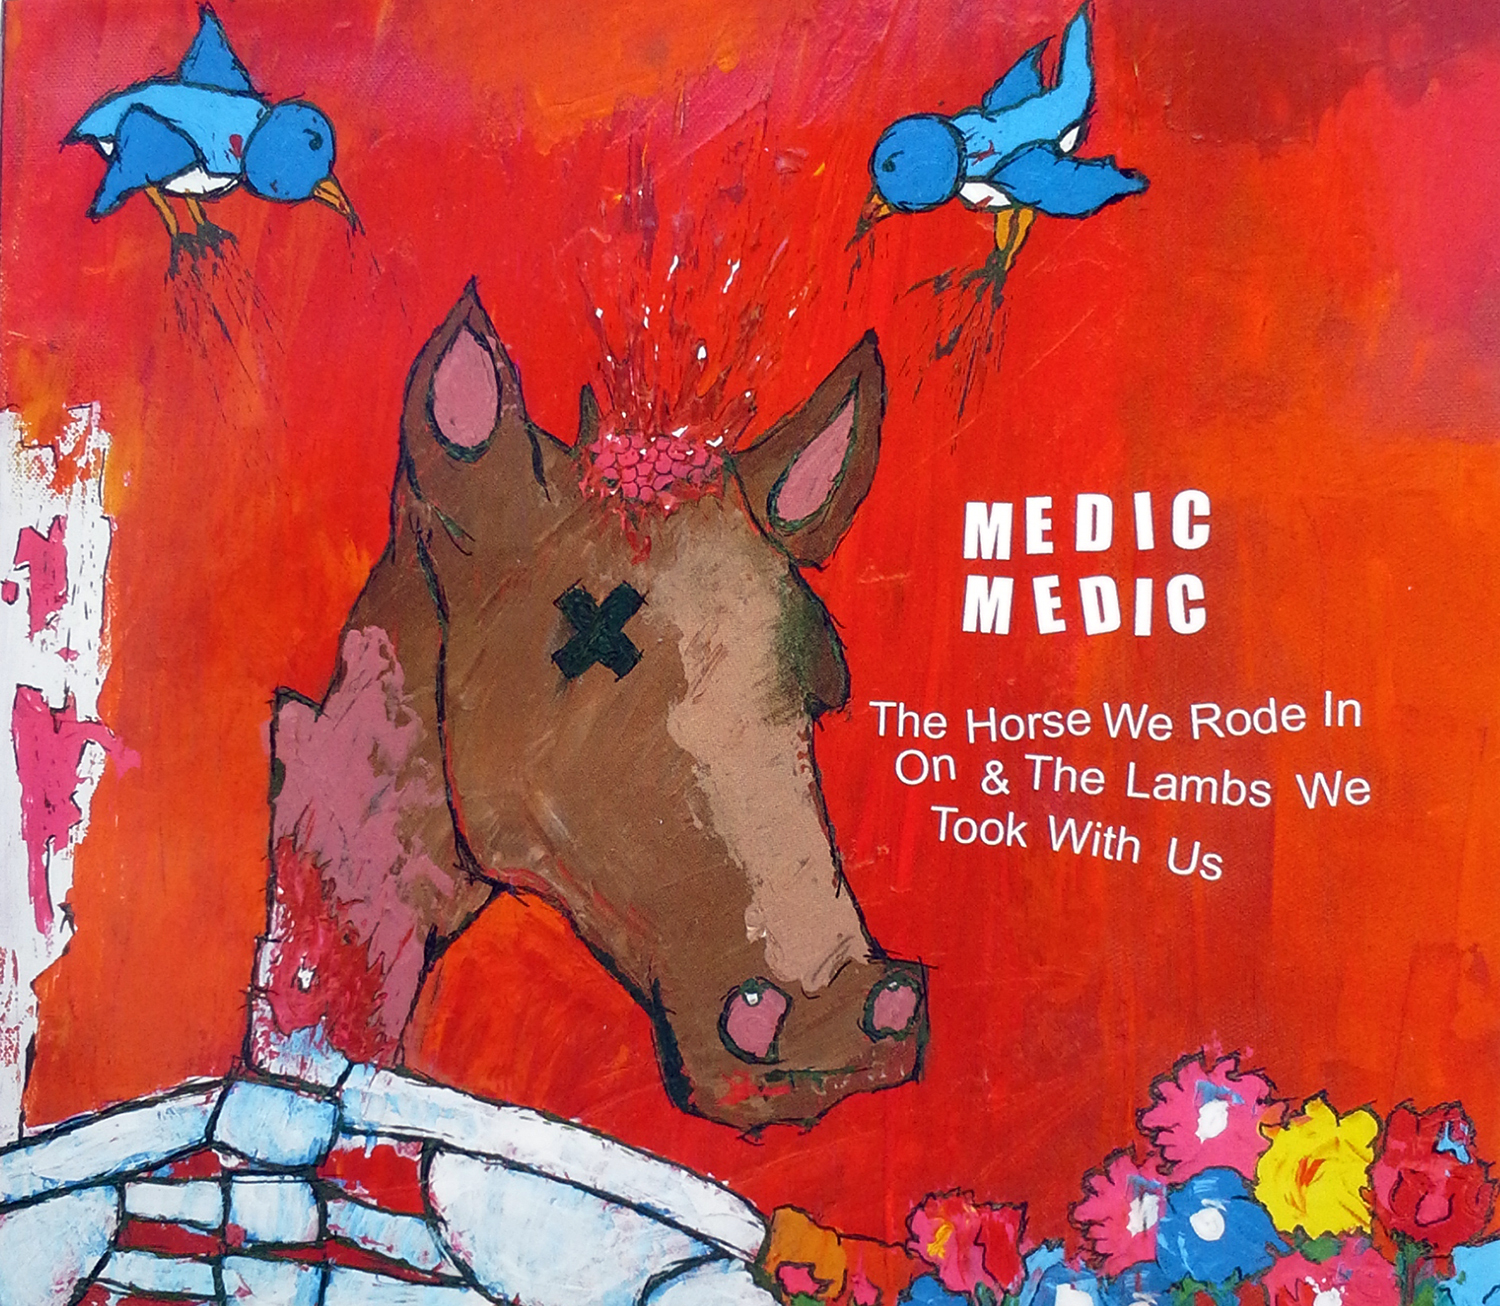 Medic Medic front cover